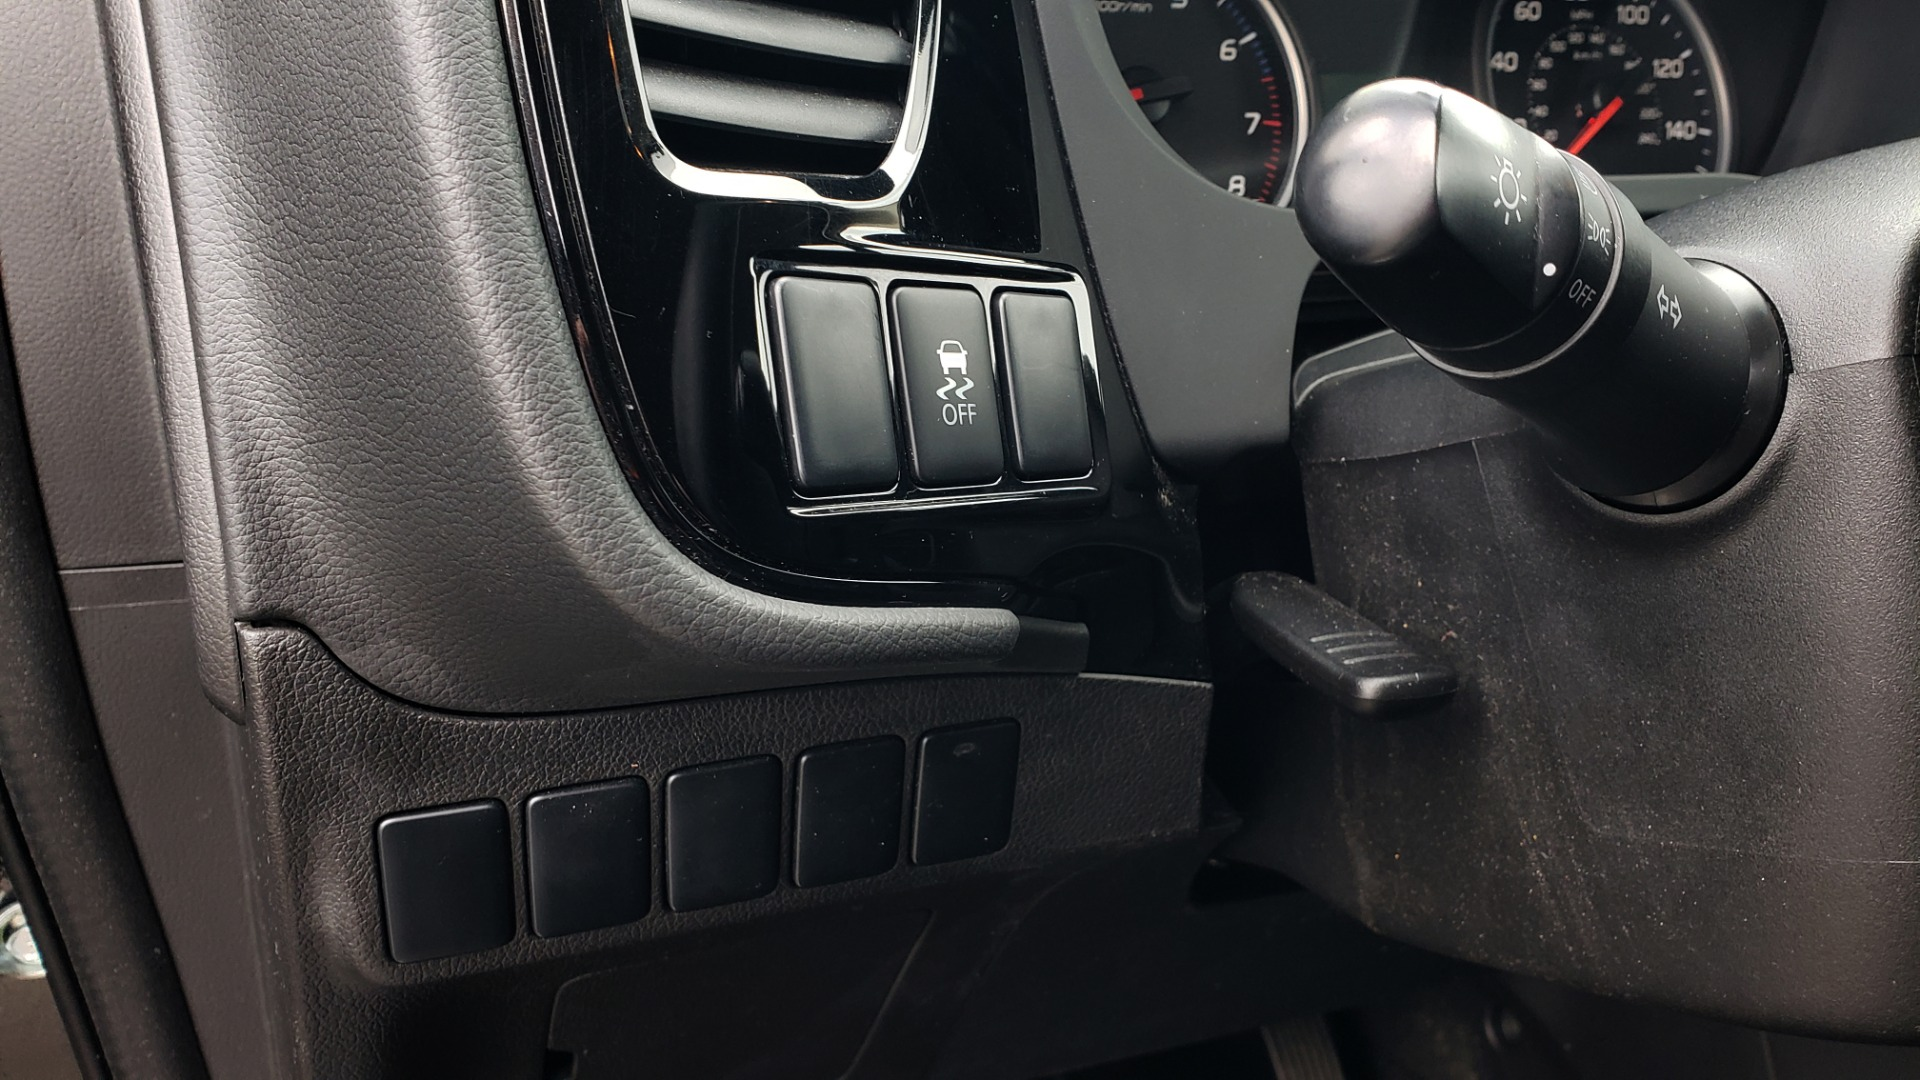 Used 2015 Mitsubishi OUTLANDER ES 2.4L SUV / CVT / FWD / KEYLESS ENTRY / 16-IN WHEELS for sale $12,995 at Formula Imports in Charlotte NC 28227 28